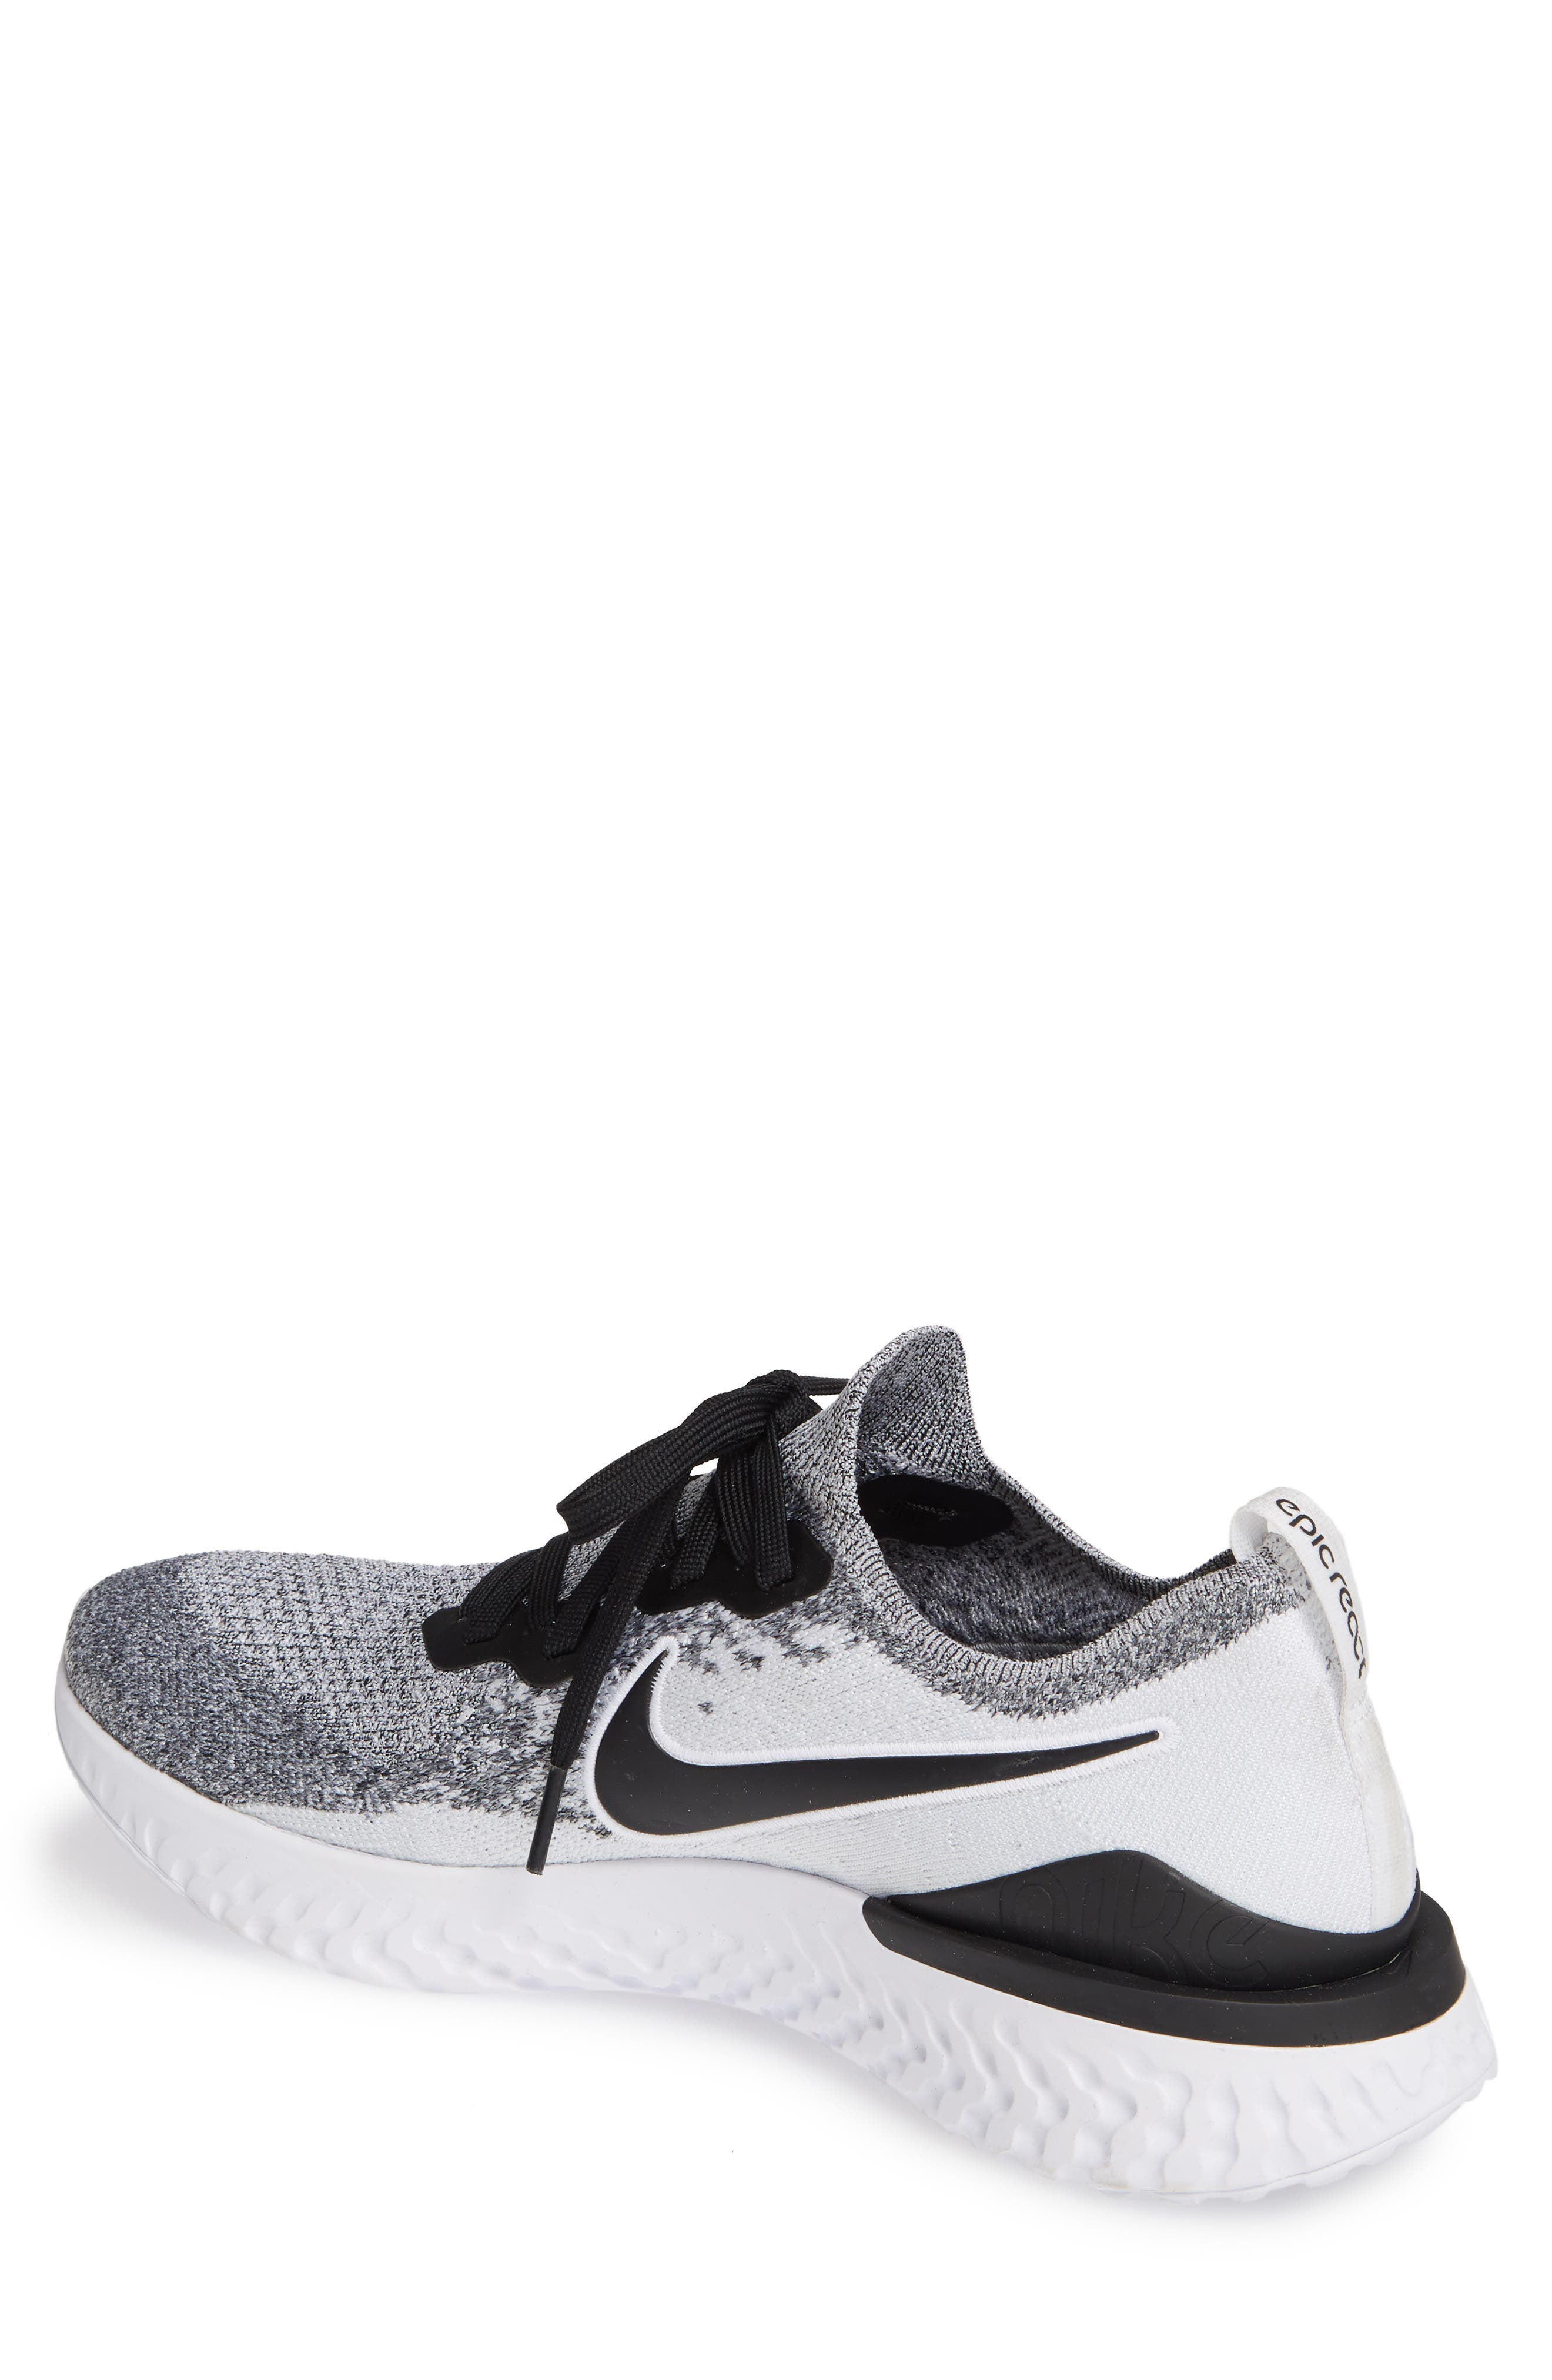 superior quality f920d 5864b Nike Men s Running Shoes and Sneakers   Nordstrom